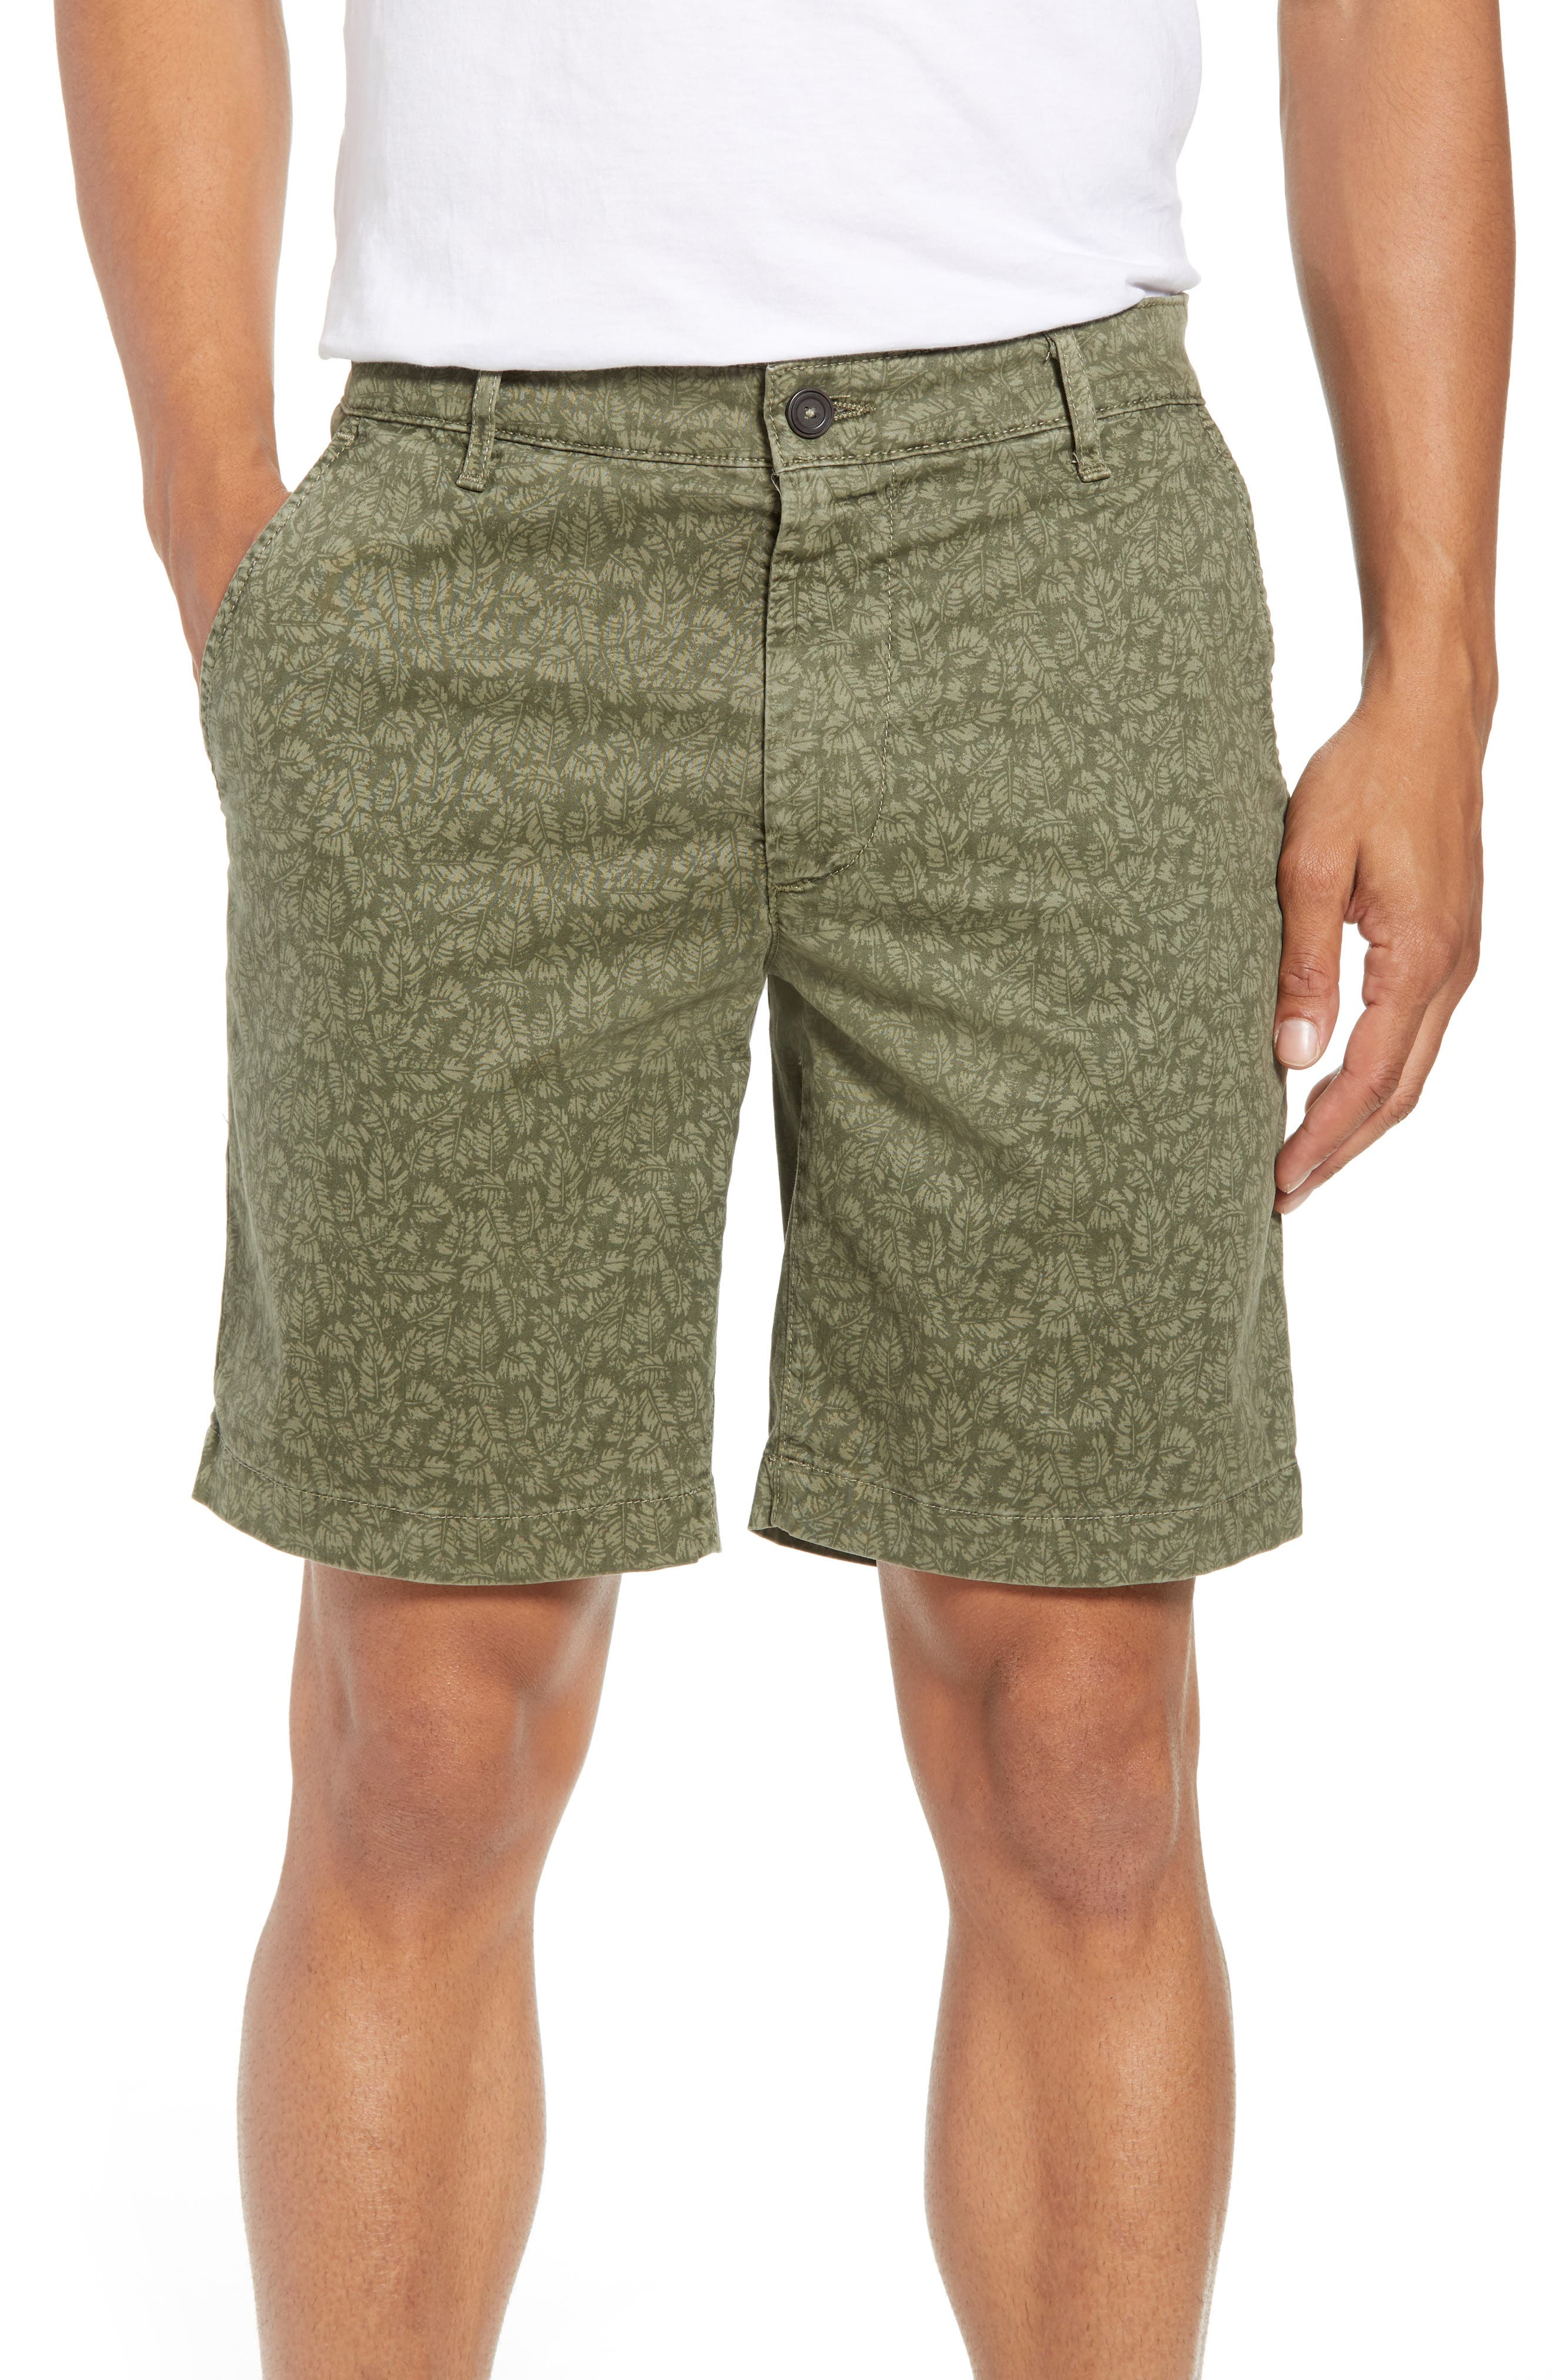 Lotas Slim Fit Stretch Cotton Shorts,                             Main thumbnail 1, color,                             Sulfur Dry Cypress